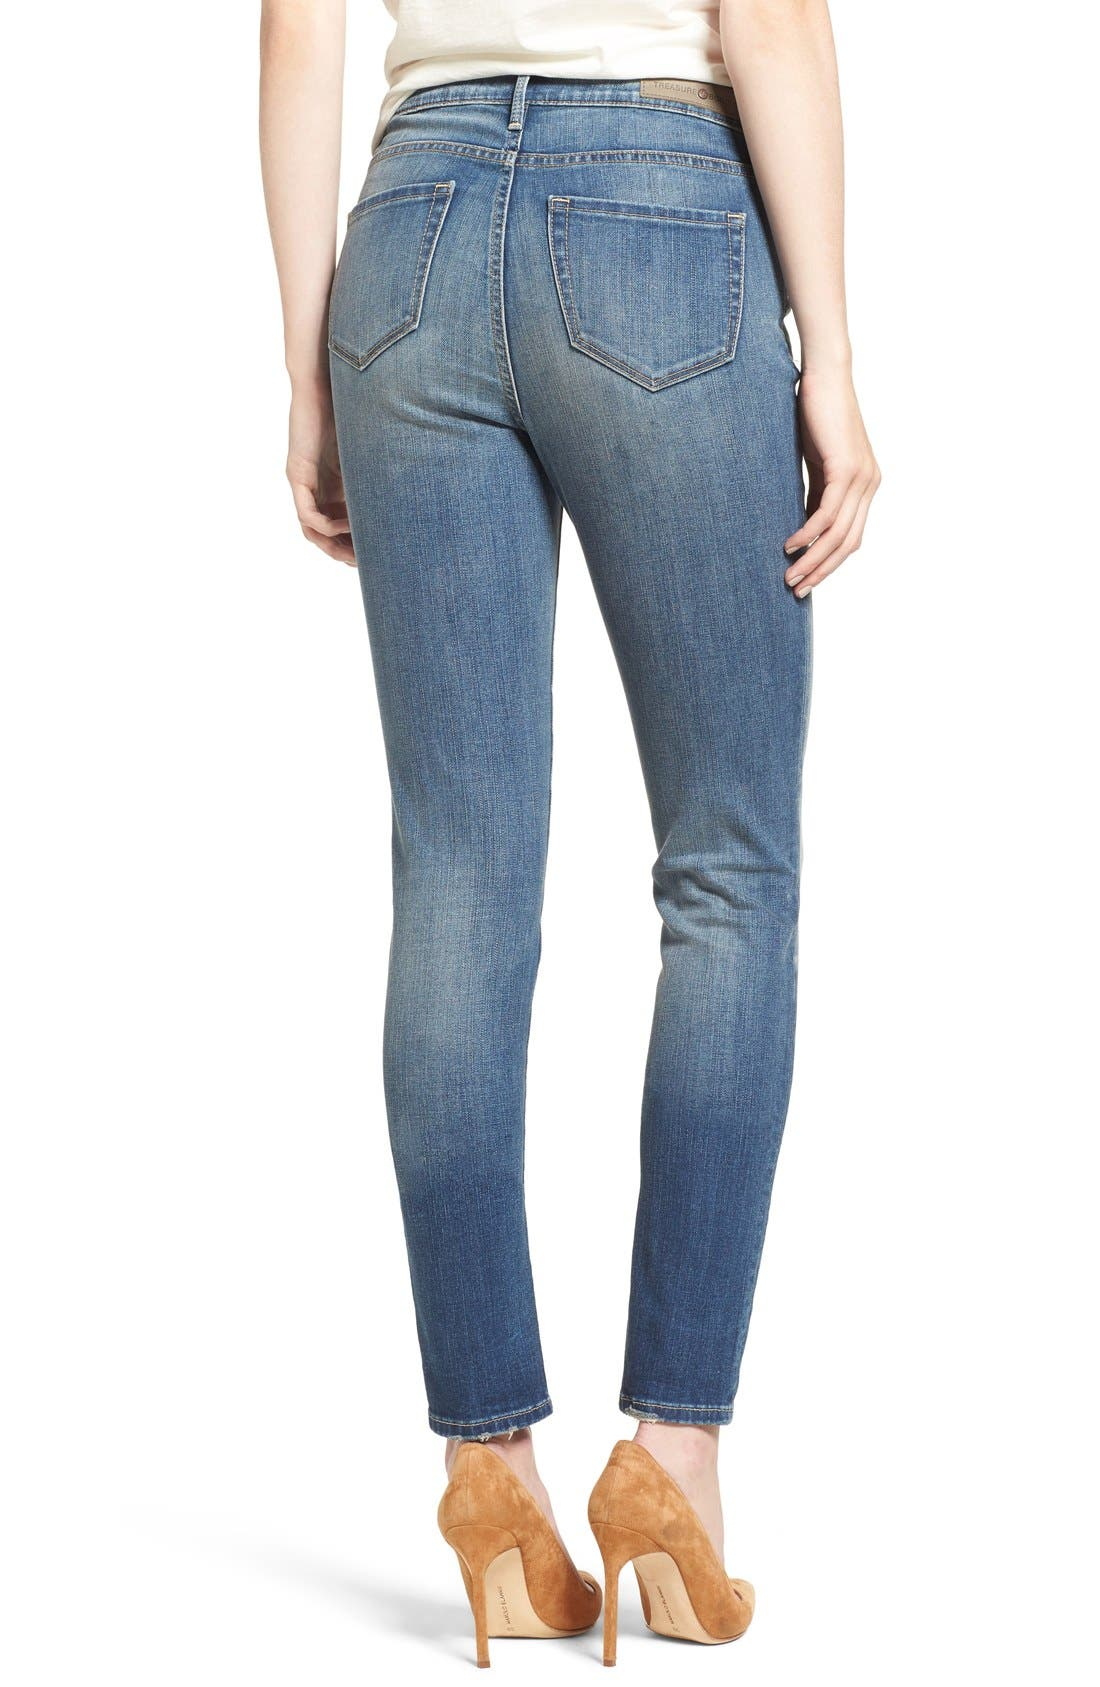 High Waist Skinny Jeans,                             Alternate thumbnail 10, color,                             400